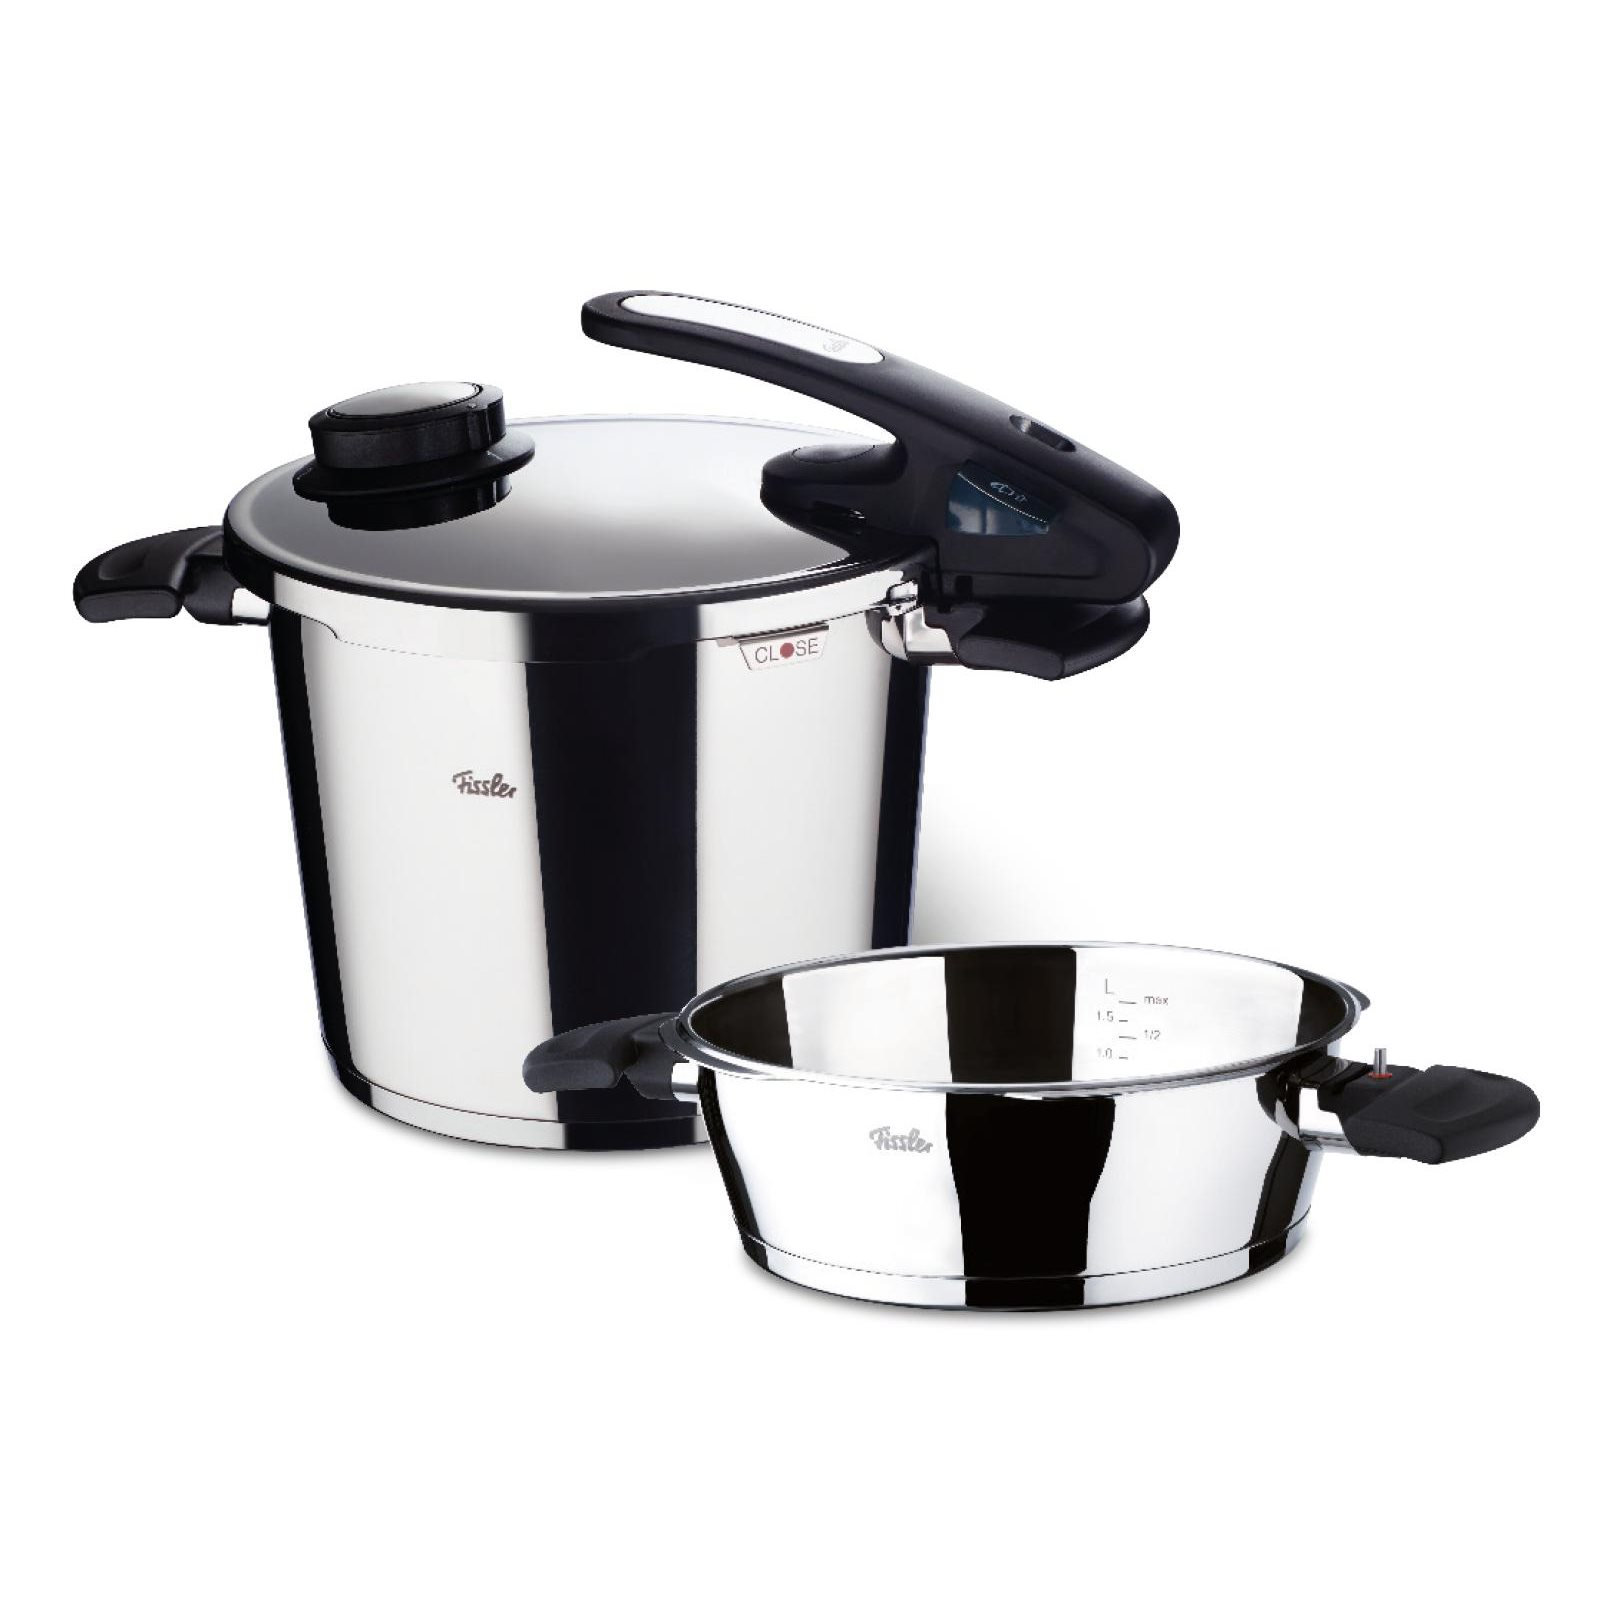 fissler schnellkochtopf vitavit edition 6 0 2 5 liter im set ebay. Black Bedroom Furniture Sets. Home Design Ideas